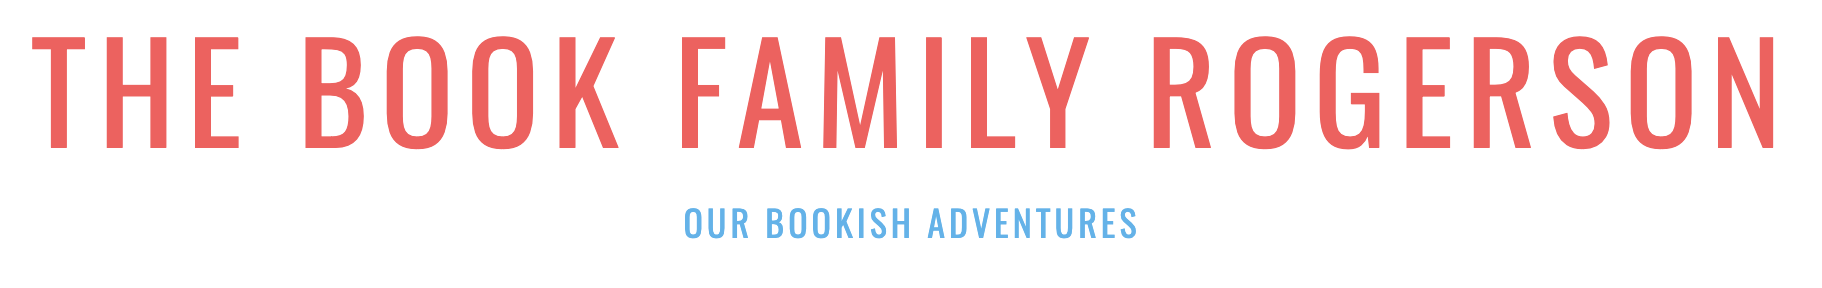 The Book Family Rogerson